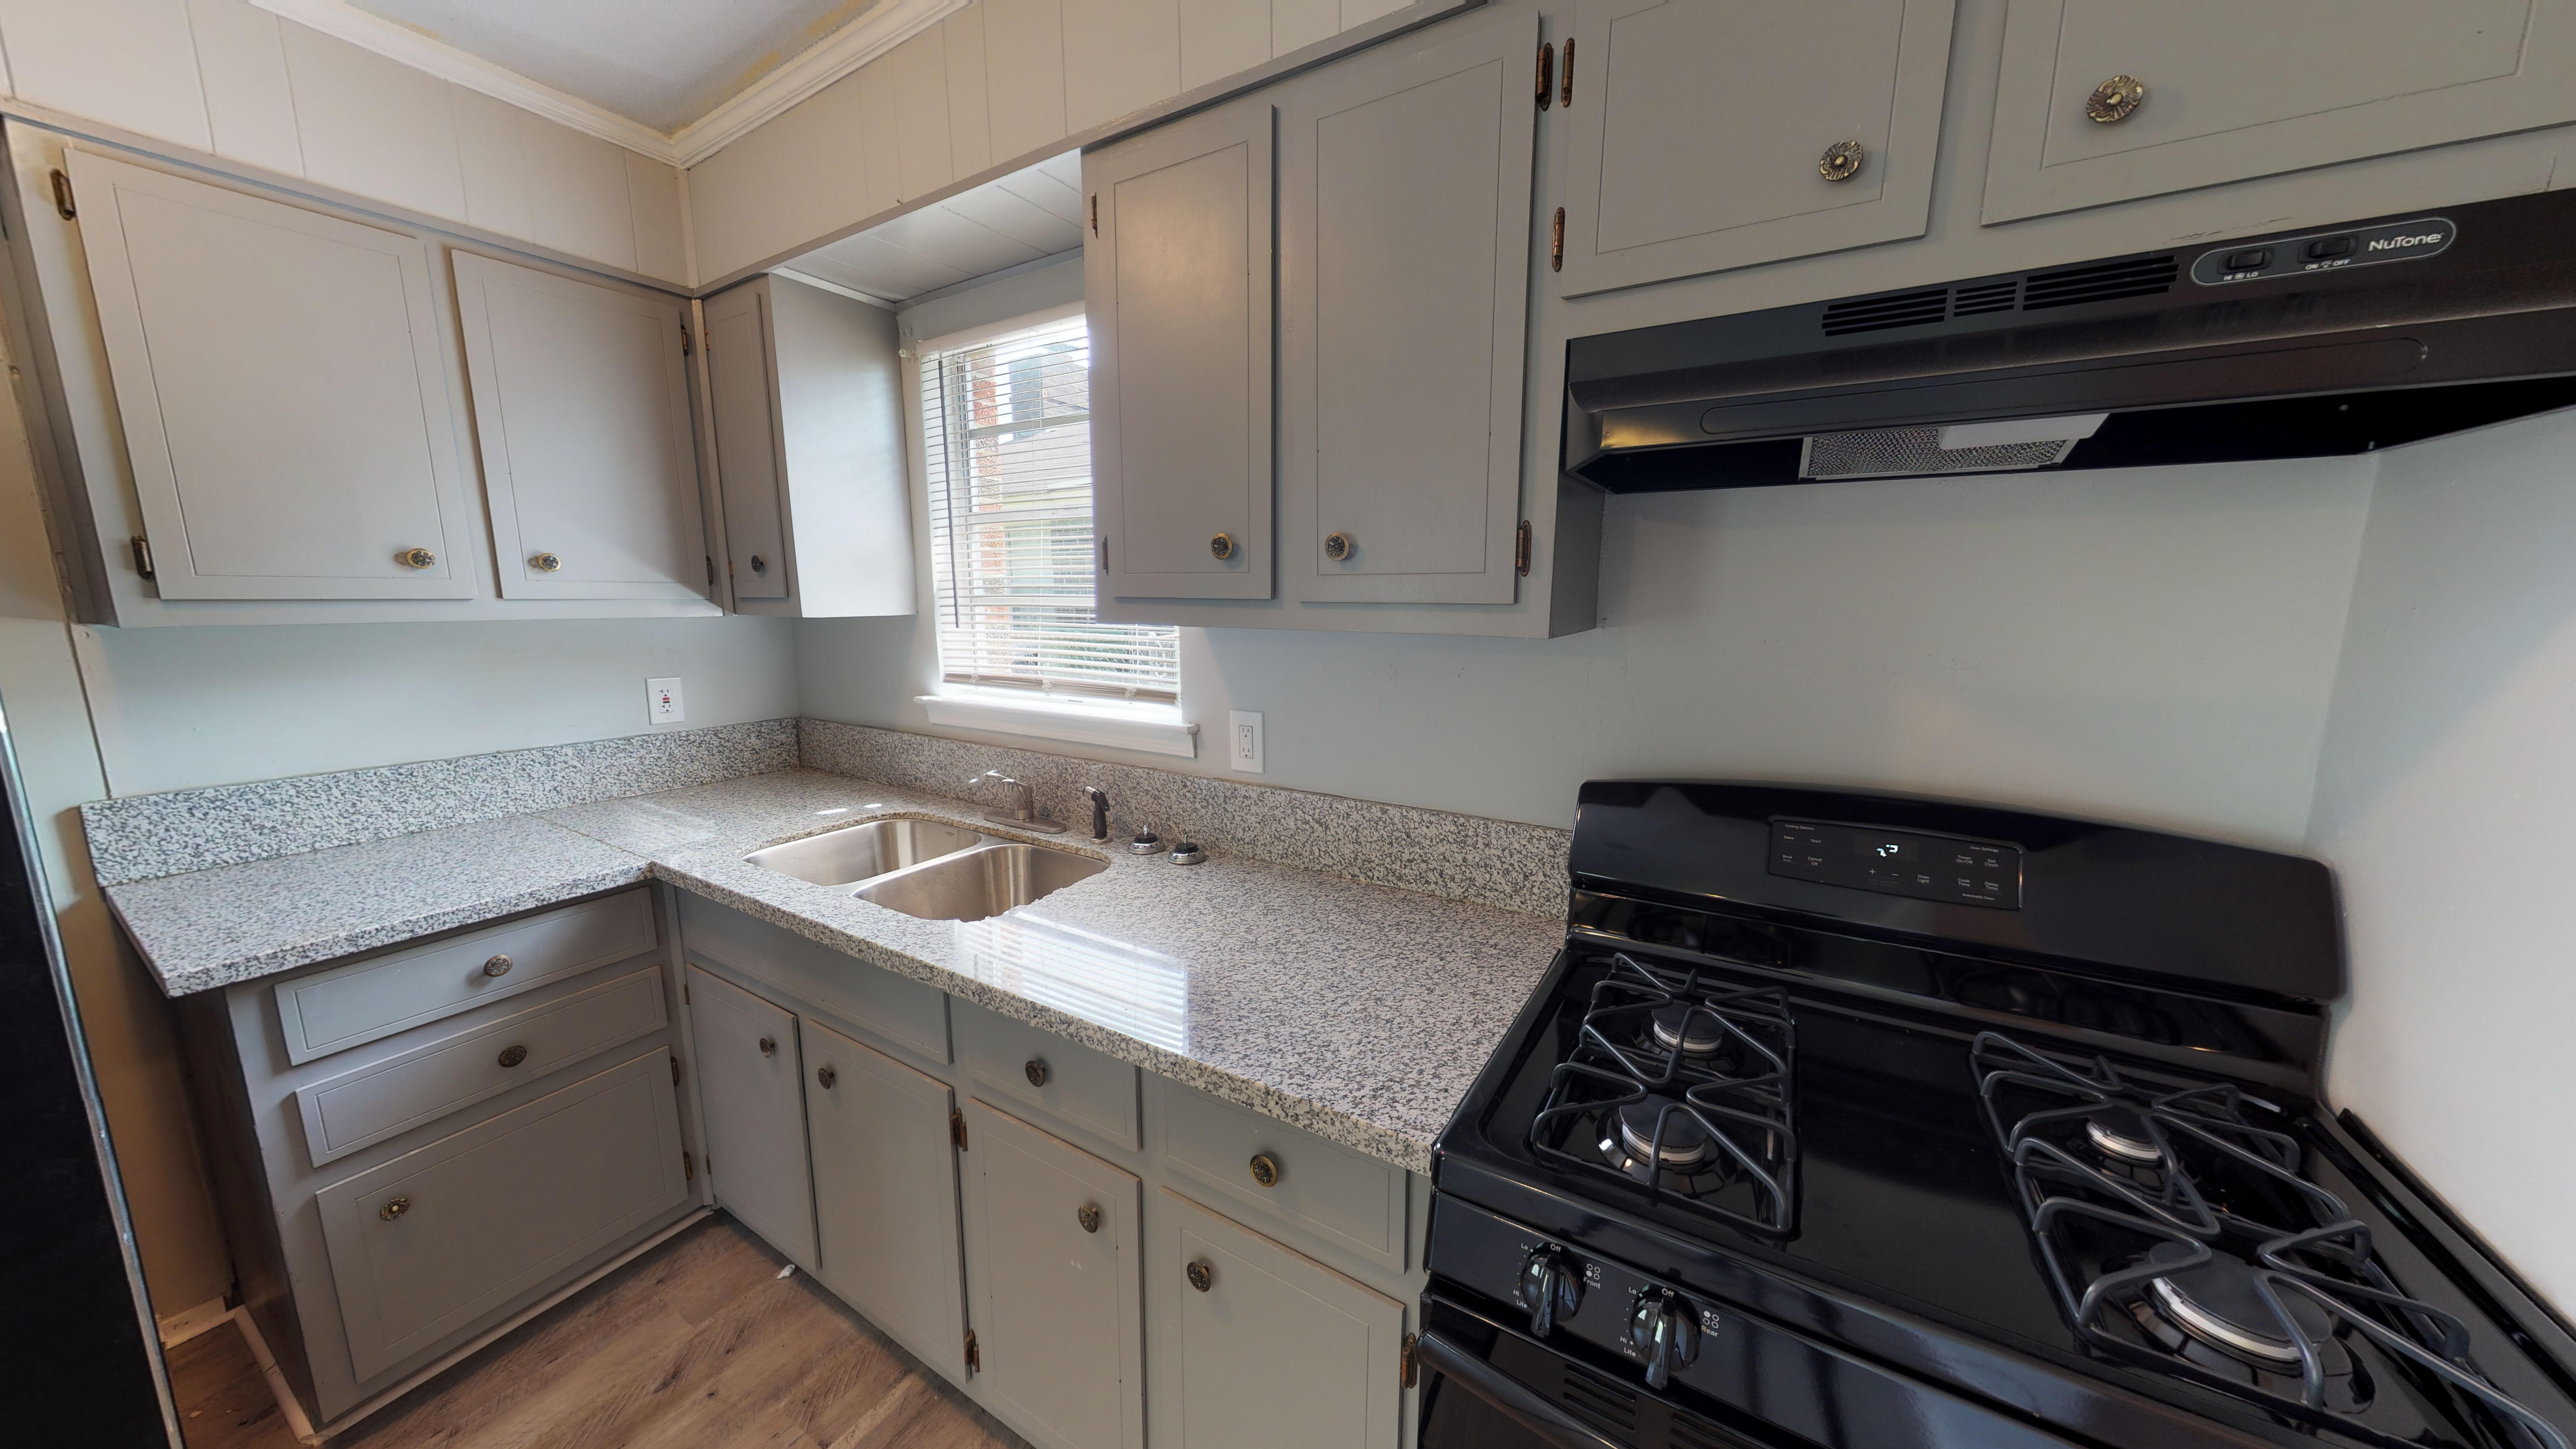 FOR RENT IN MONTGOMERY! 3 BED 2 BATH AT 4217 GREEN MEADOW DRIVE